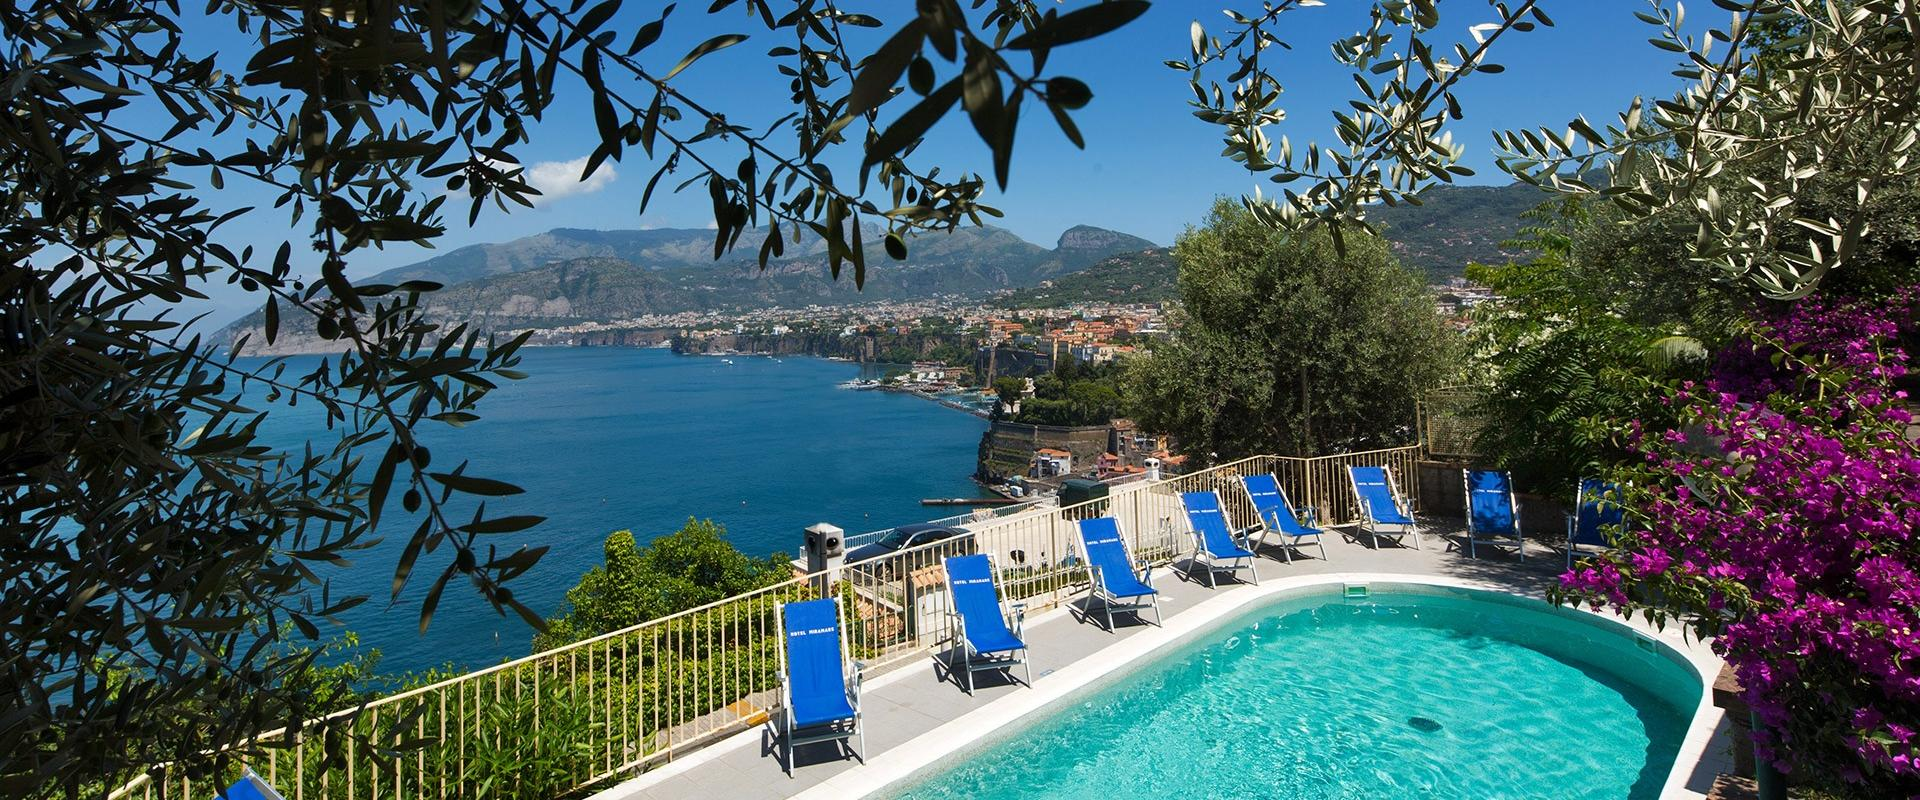 Relais in Sorrento